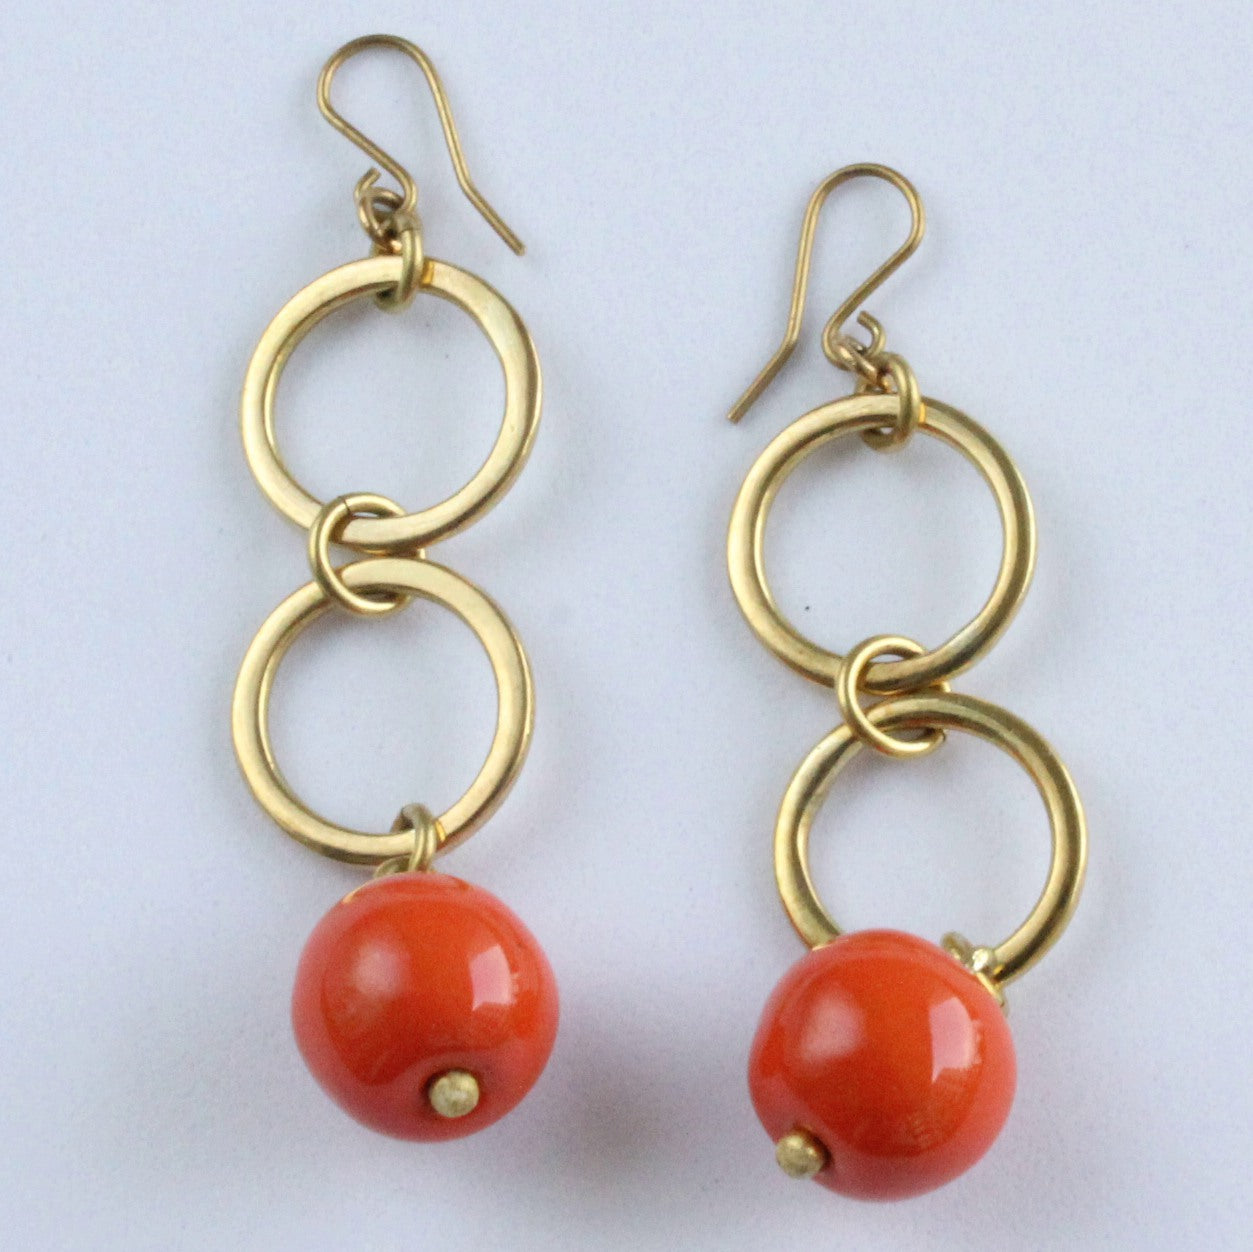 Brass Earrings Majira